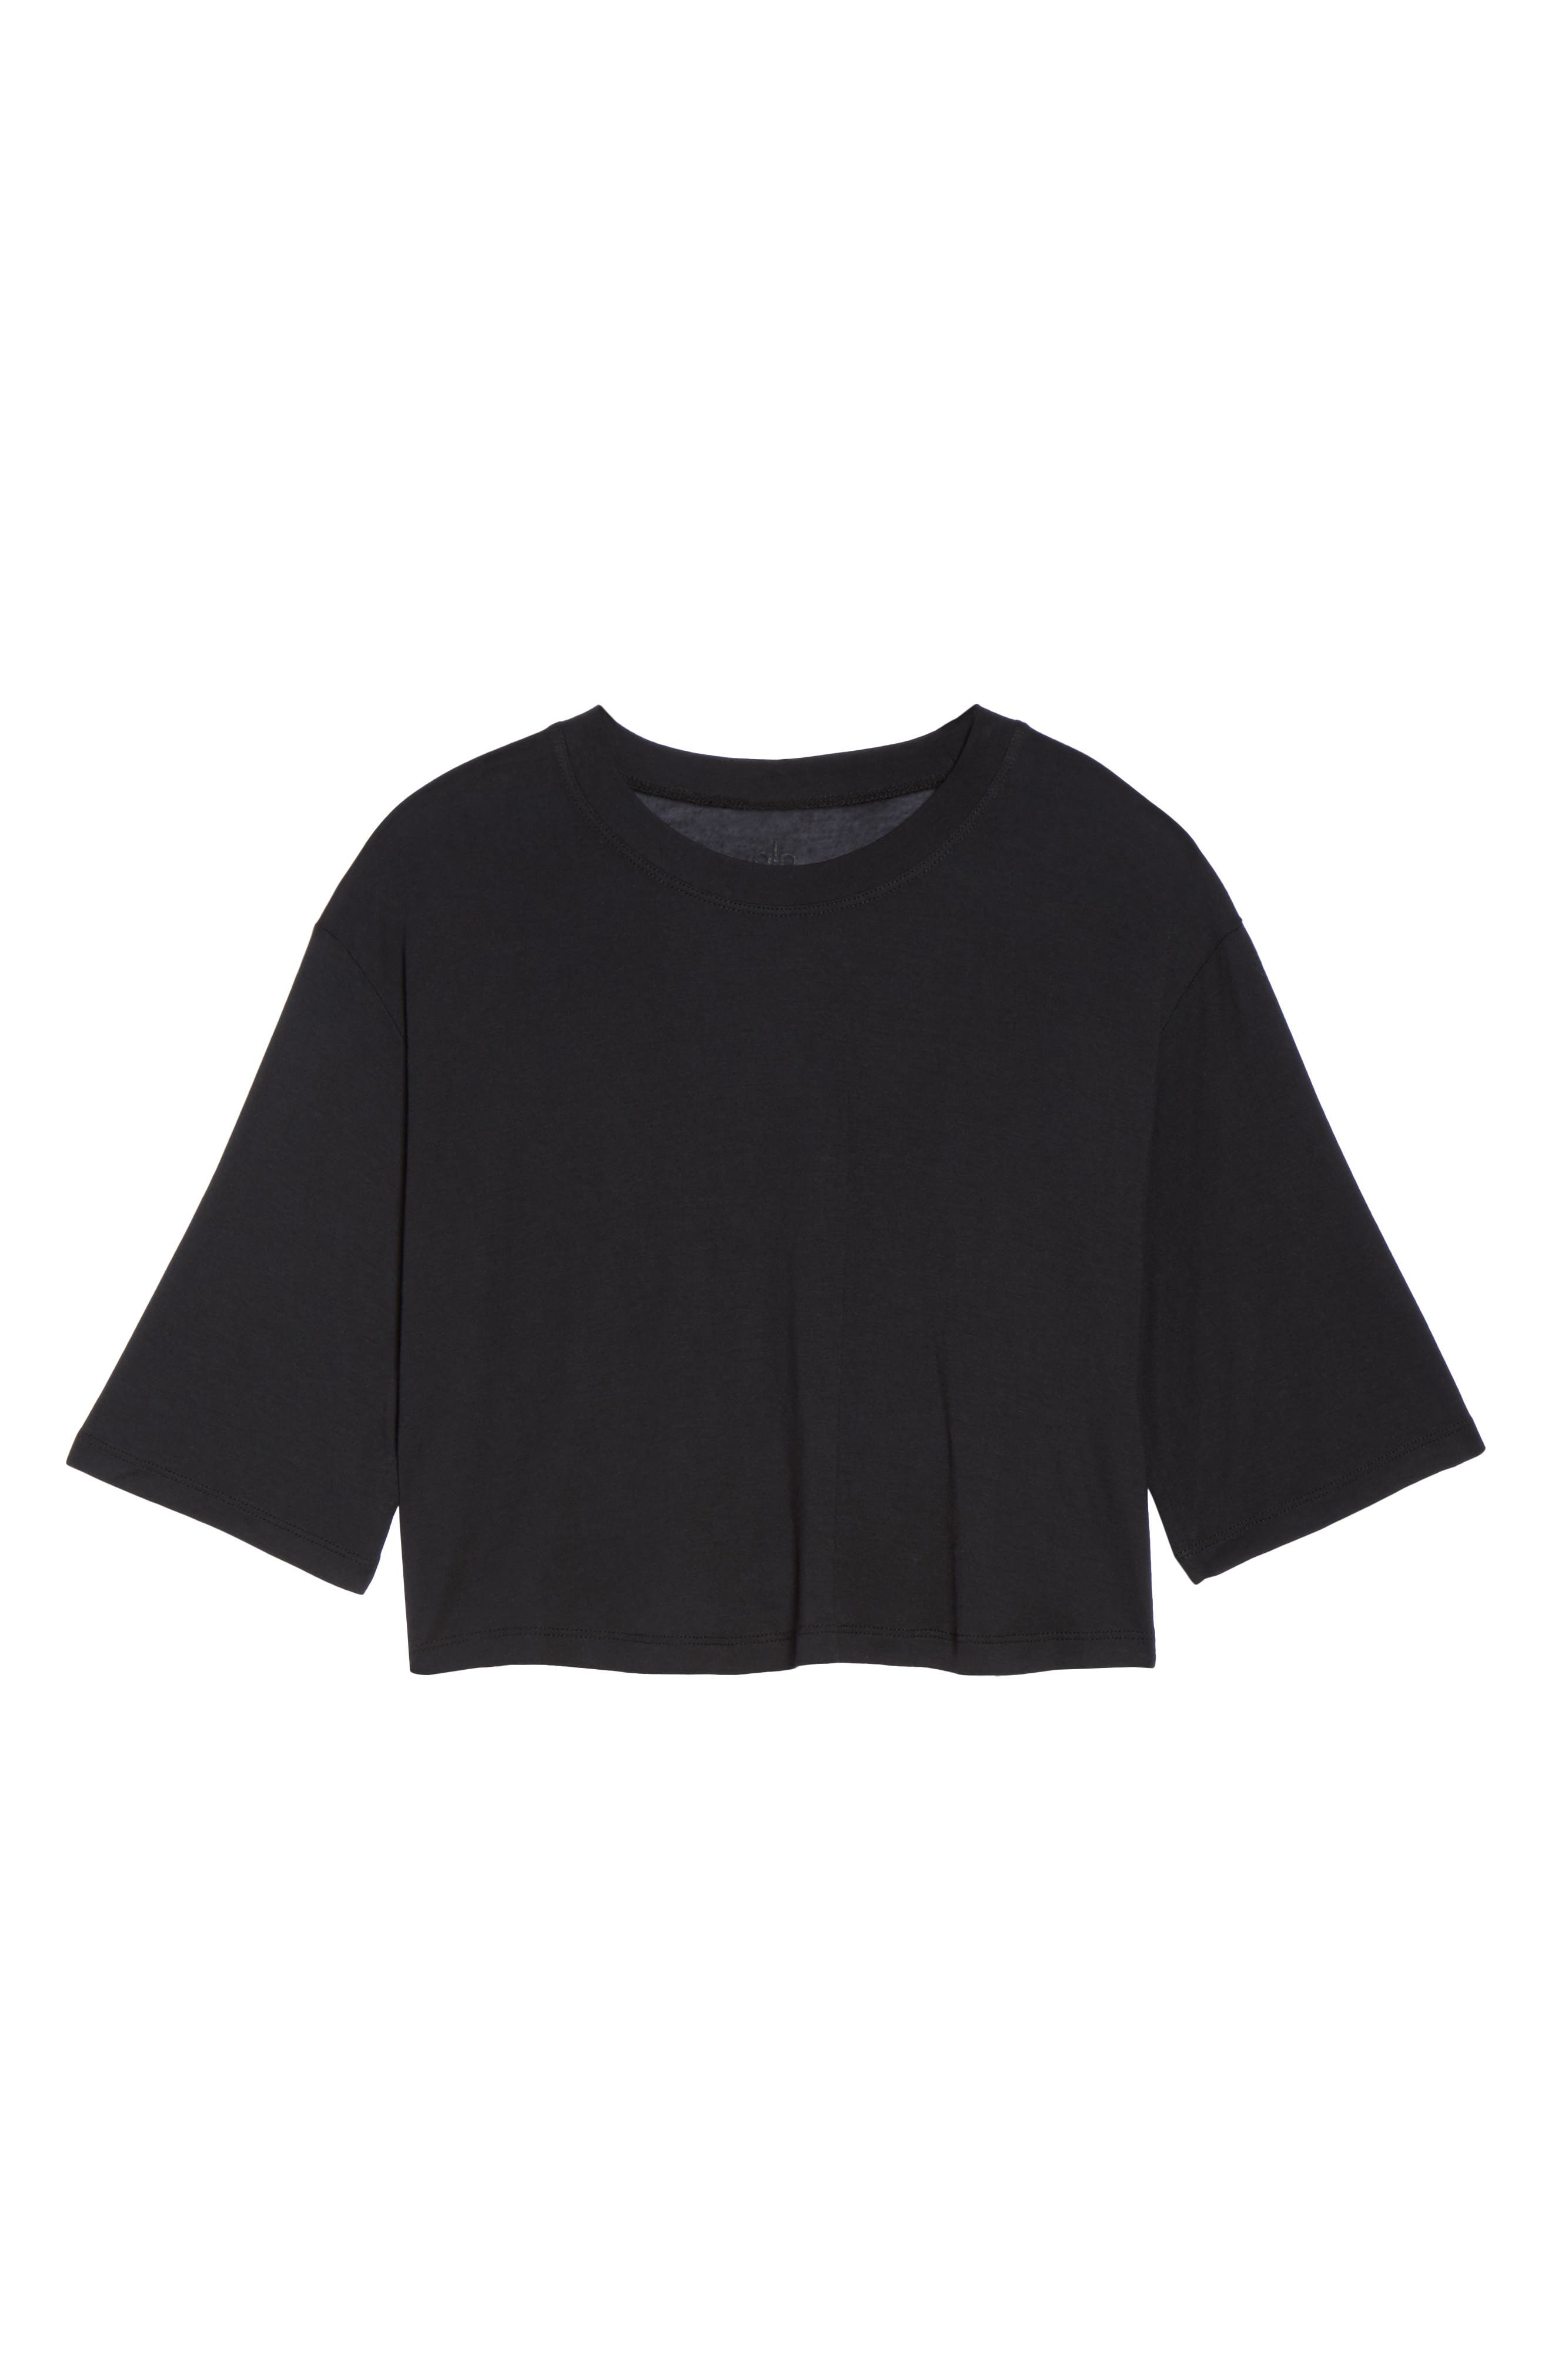 Verve Crop Top,                             Alternate thumbnail 6, color,                             001